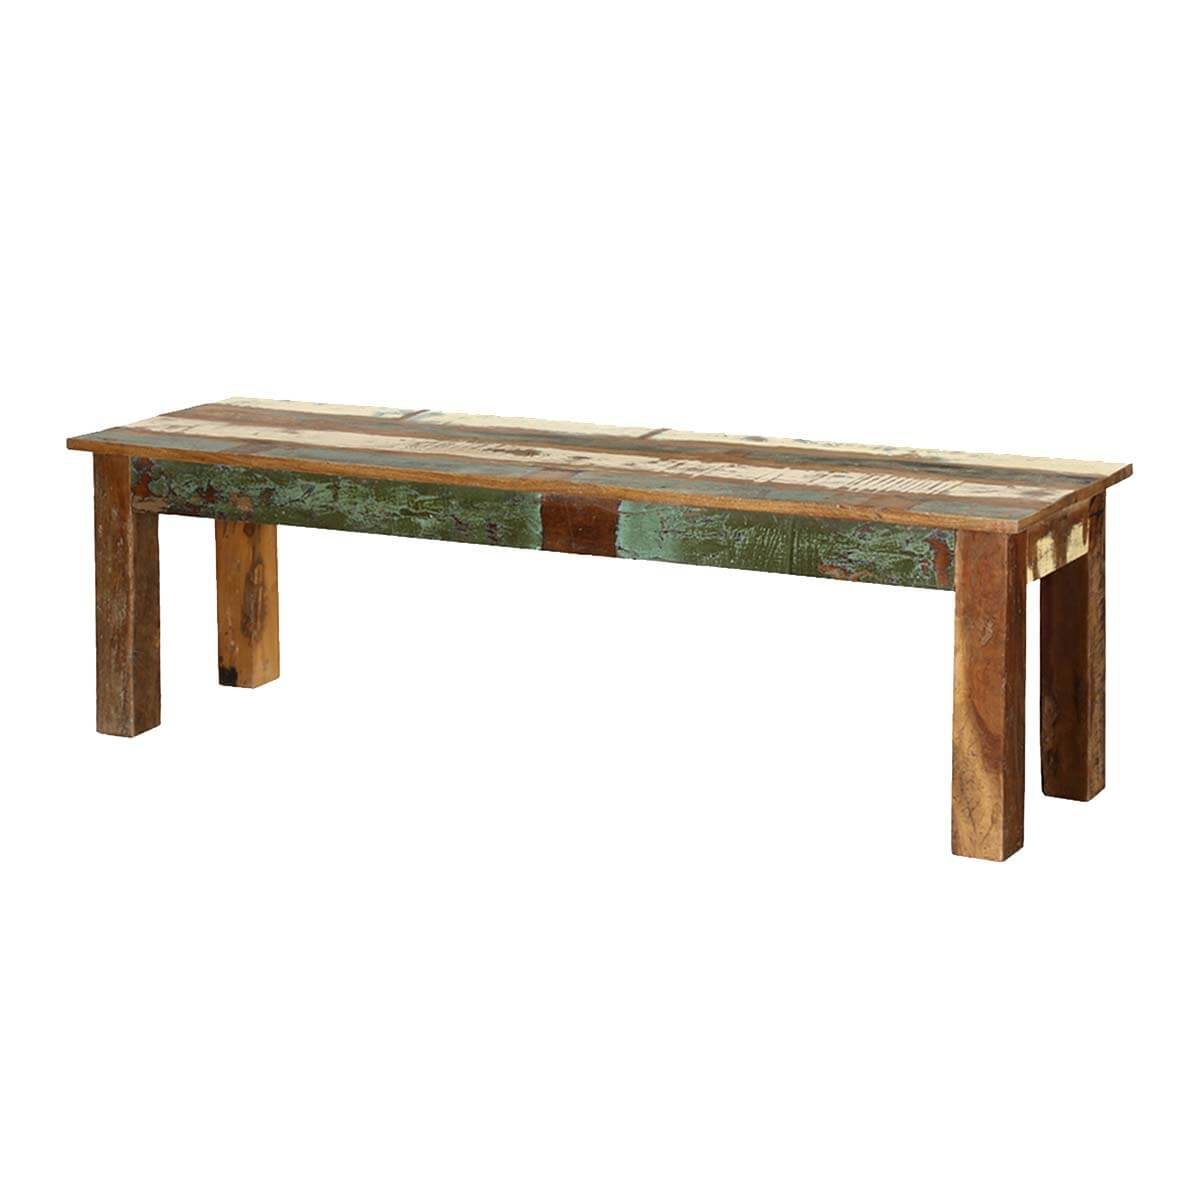 "Rustic Rainbow Reclaimed Wood 58"" Long Bench"